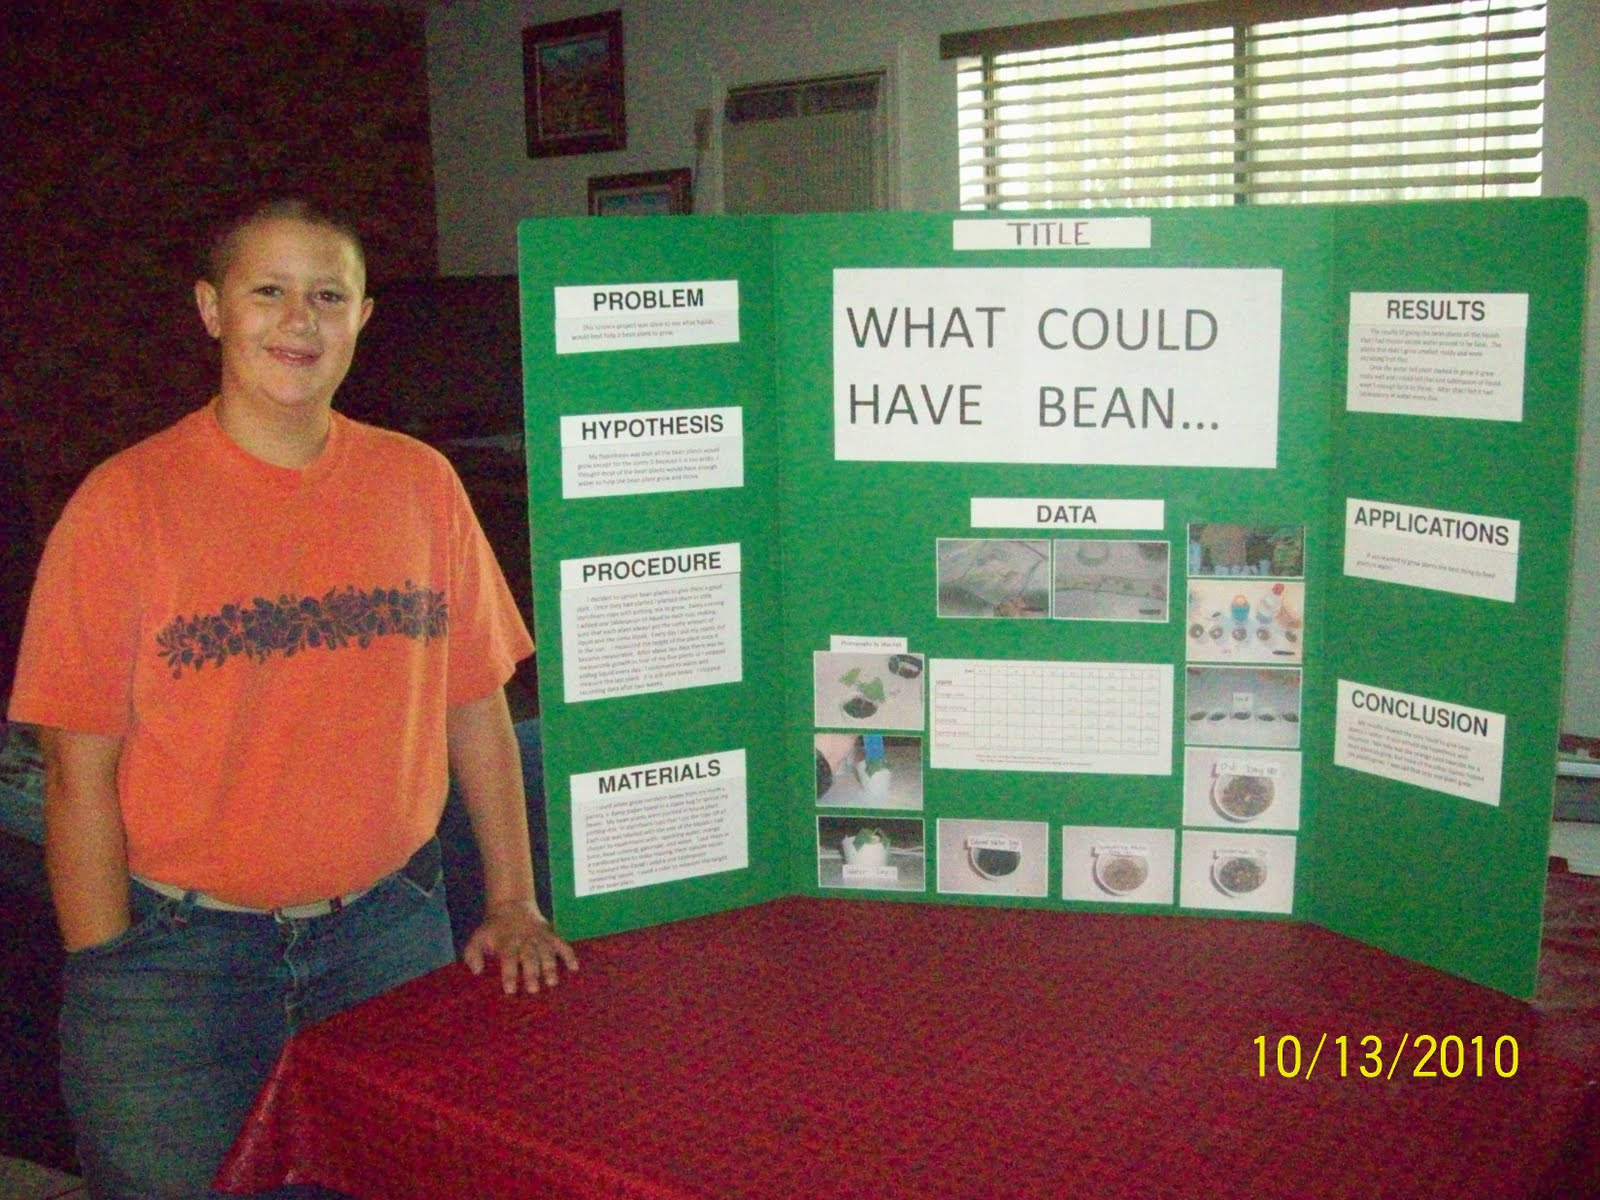 6th grade science project Retrieved from https://wwwthoughtcocom/write-a-science-fair-project-report-609072 helmenstine, anne marie fun and interesting 6th grade science project ideas.